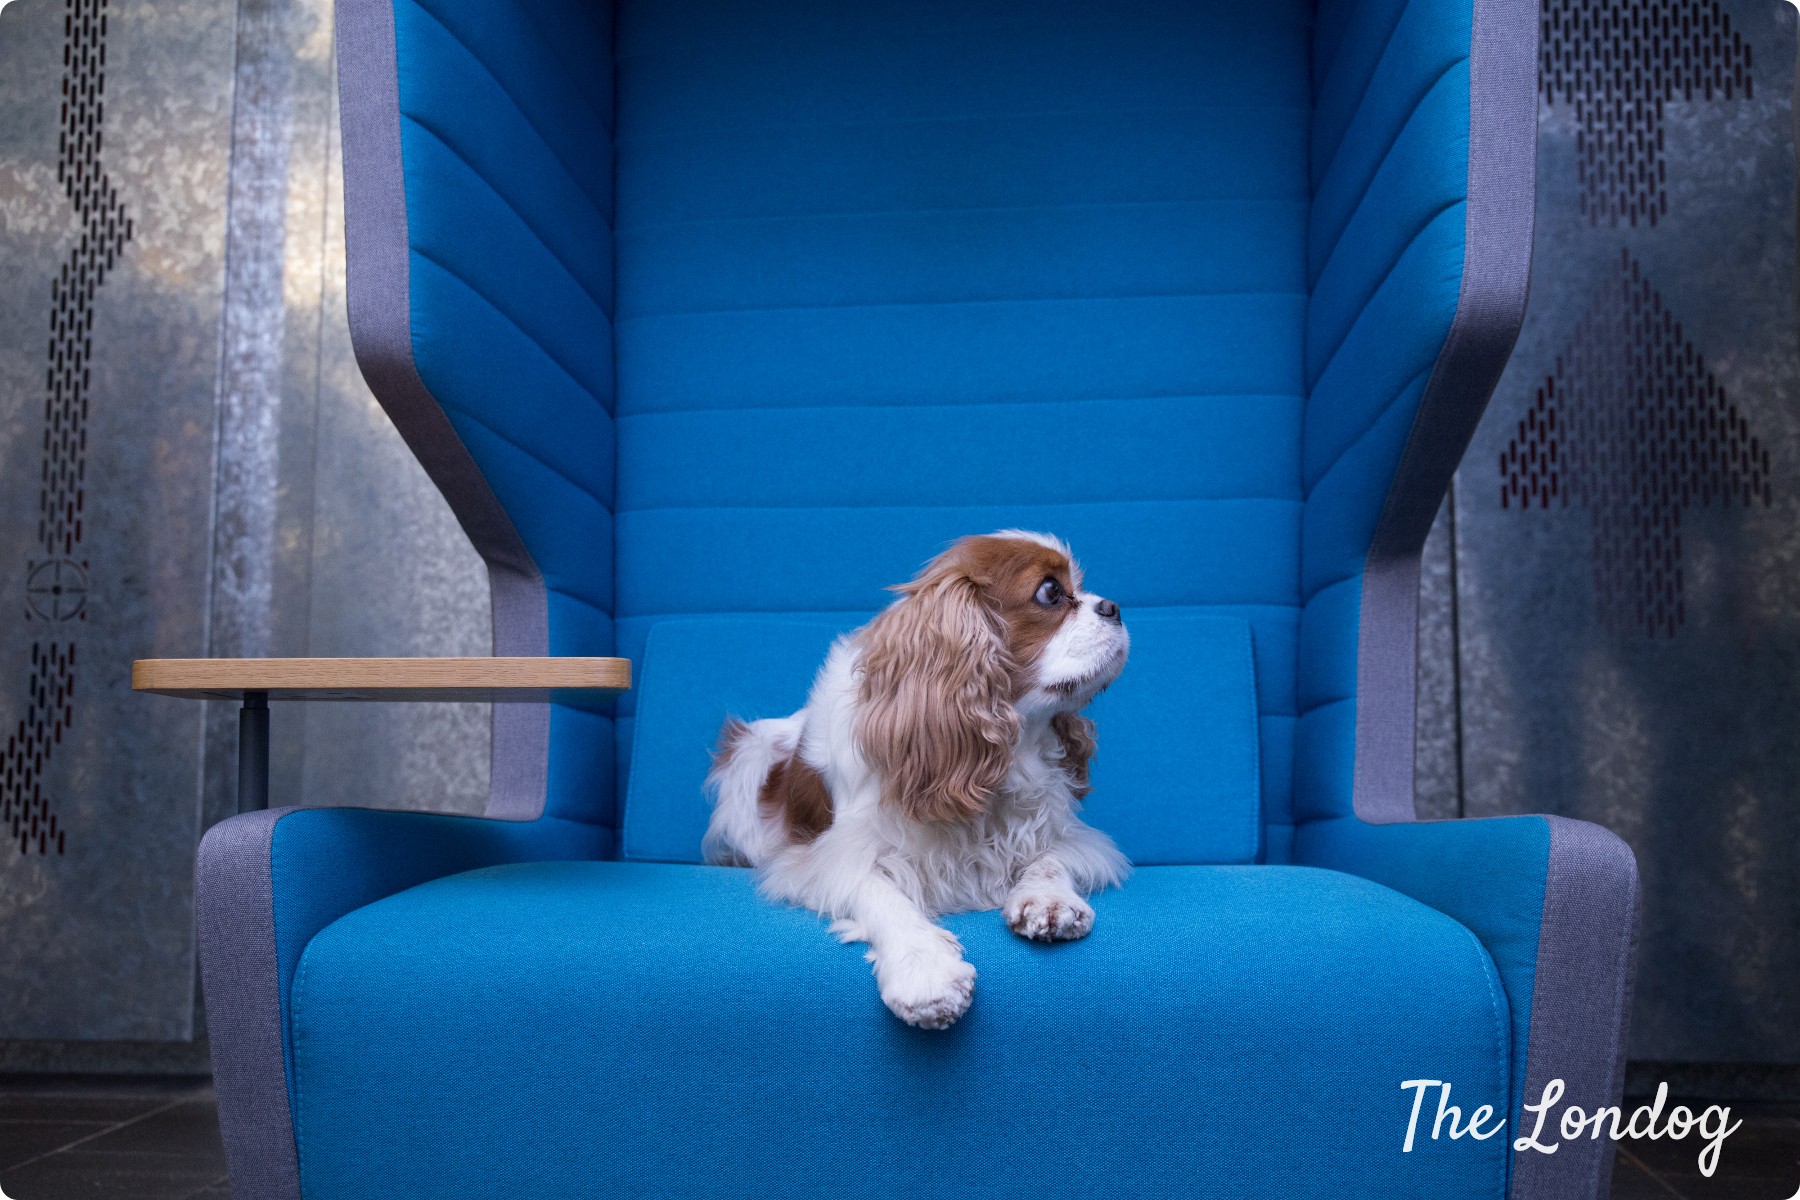 office dog lays on a blue swinging chair at TransferWise offices in London